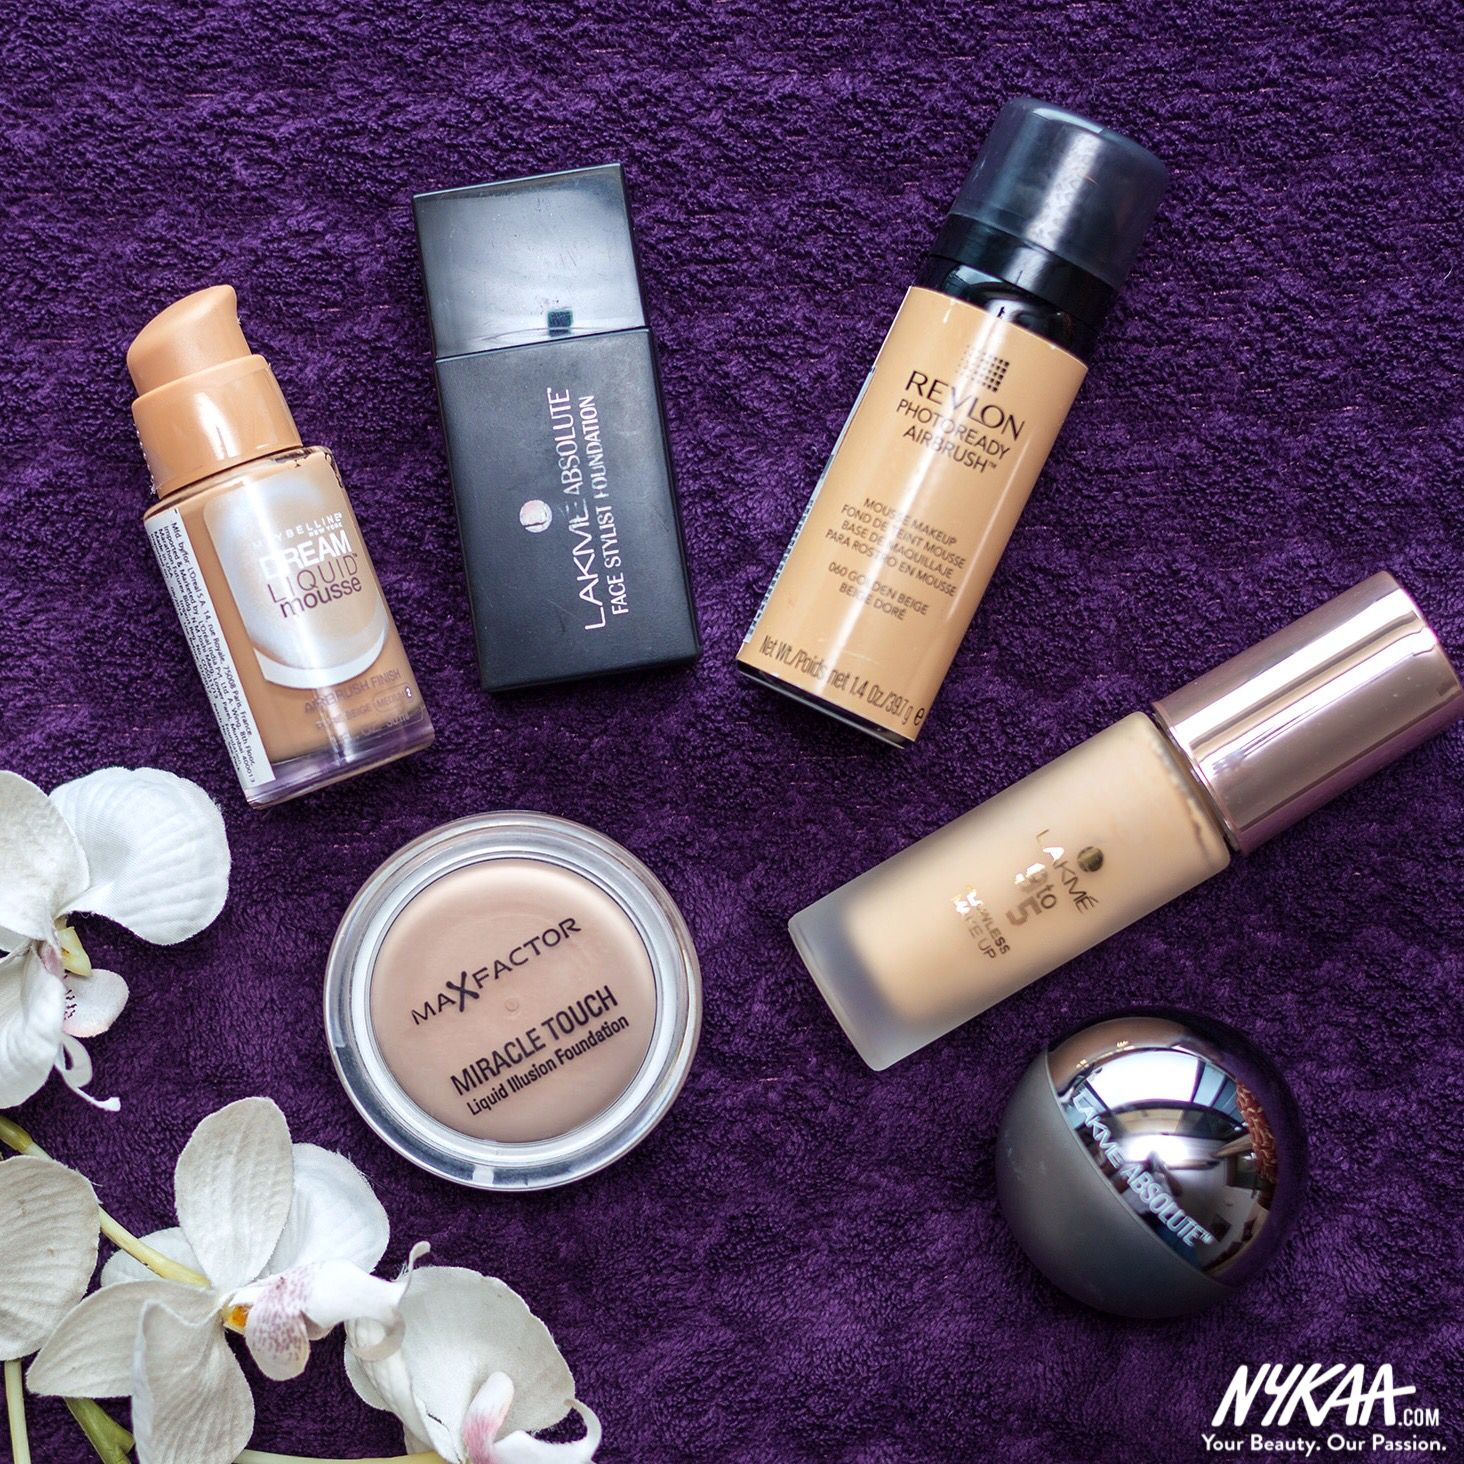 Because you know it's all about that #base!  #Makeup #Beauty #Foundations #Love #InstaGood #Awesome #InstaDaily #Nykaa